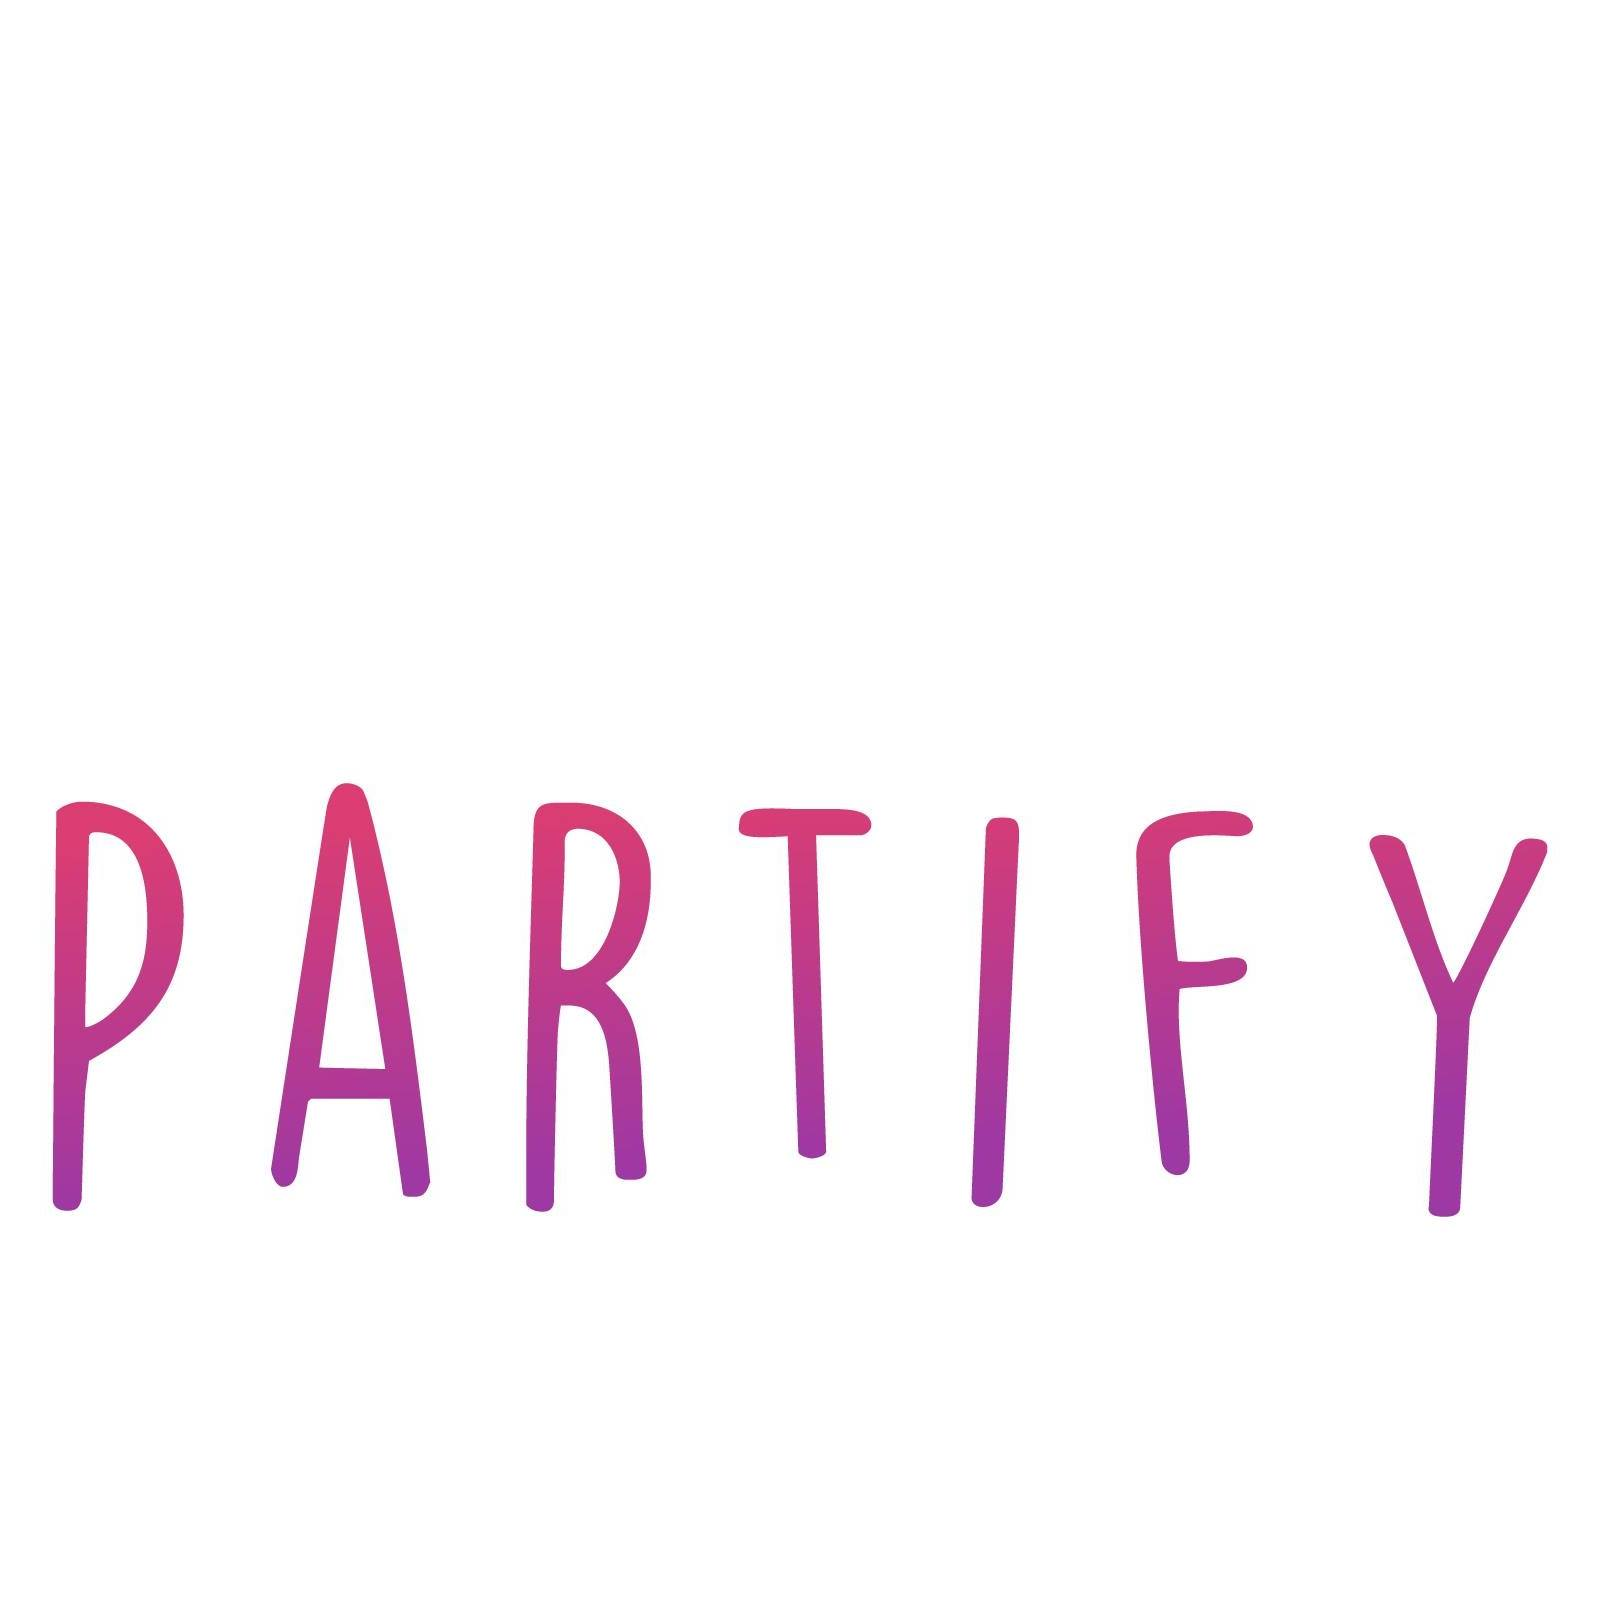 Partify